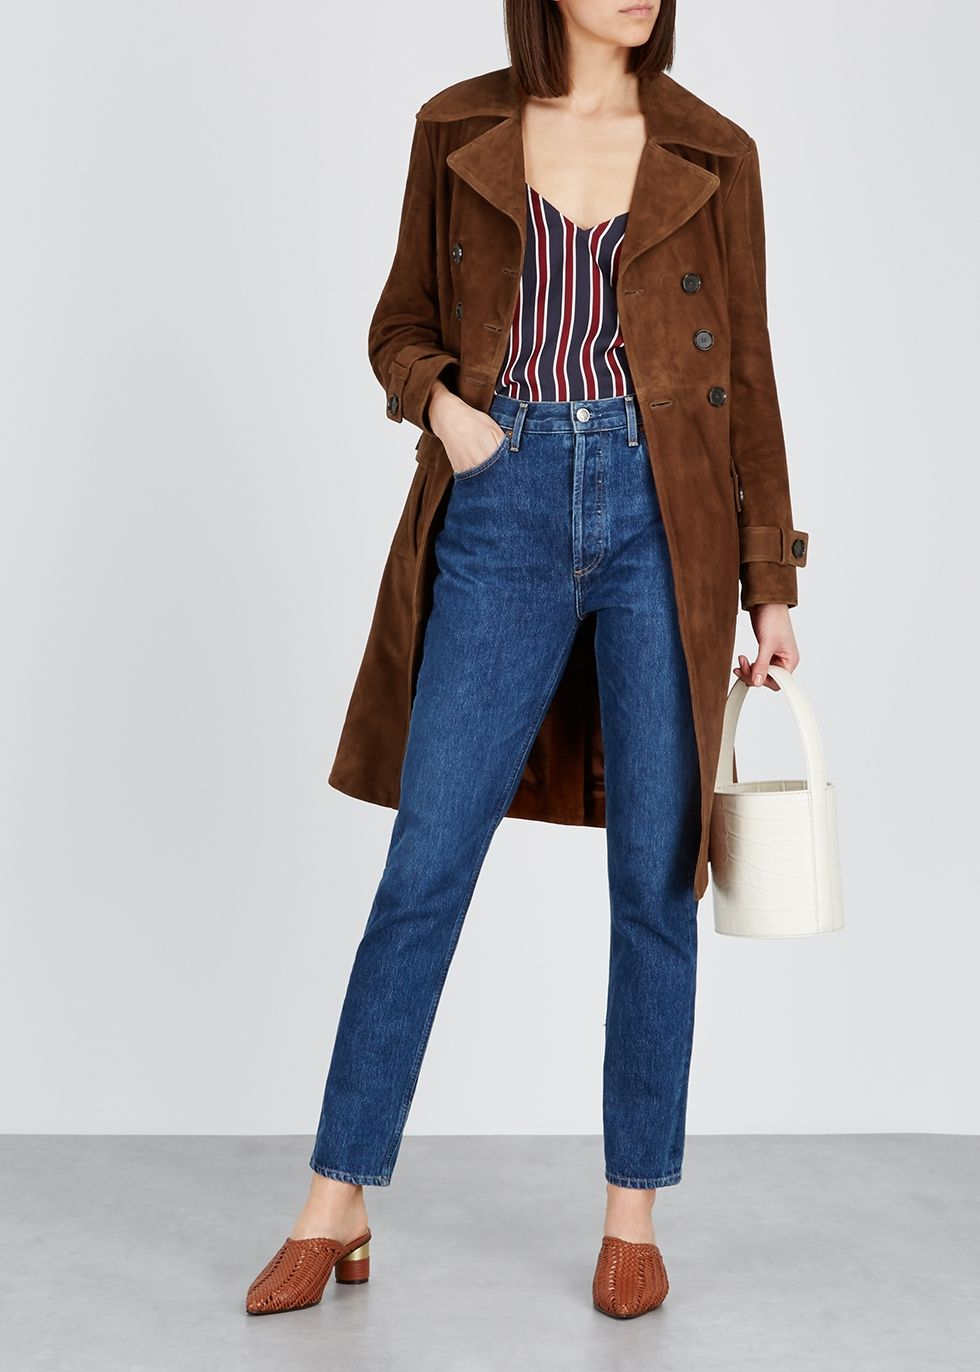 ALEXACHUNG Dark brown suede trench coat Harvey Nichols